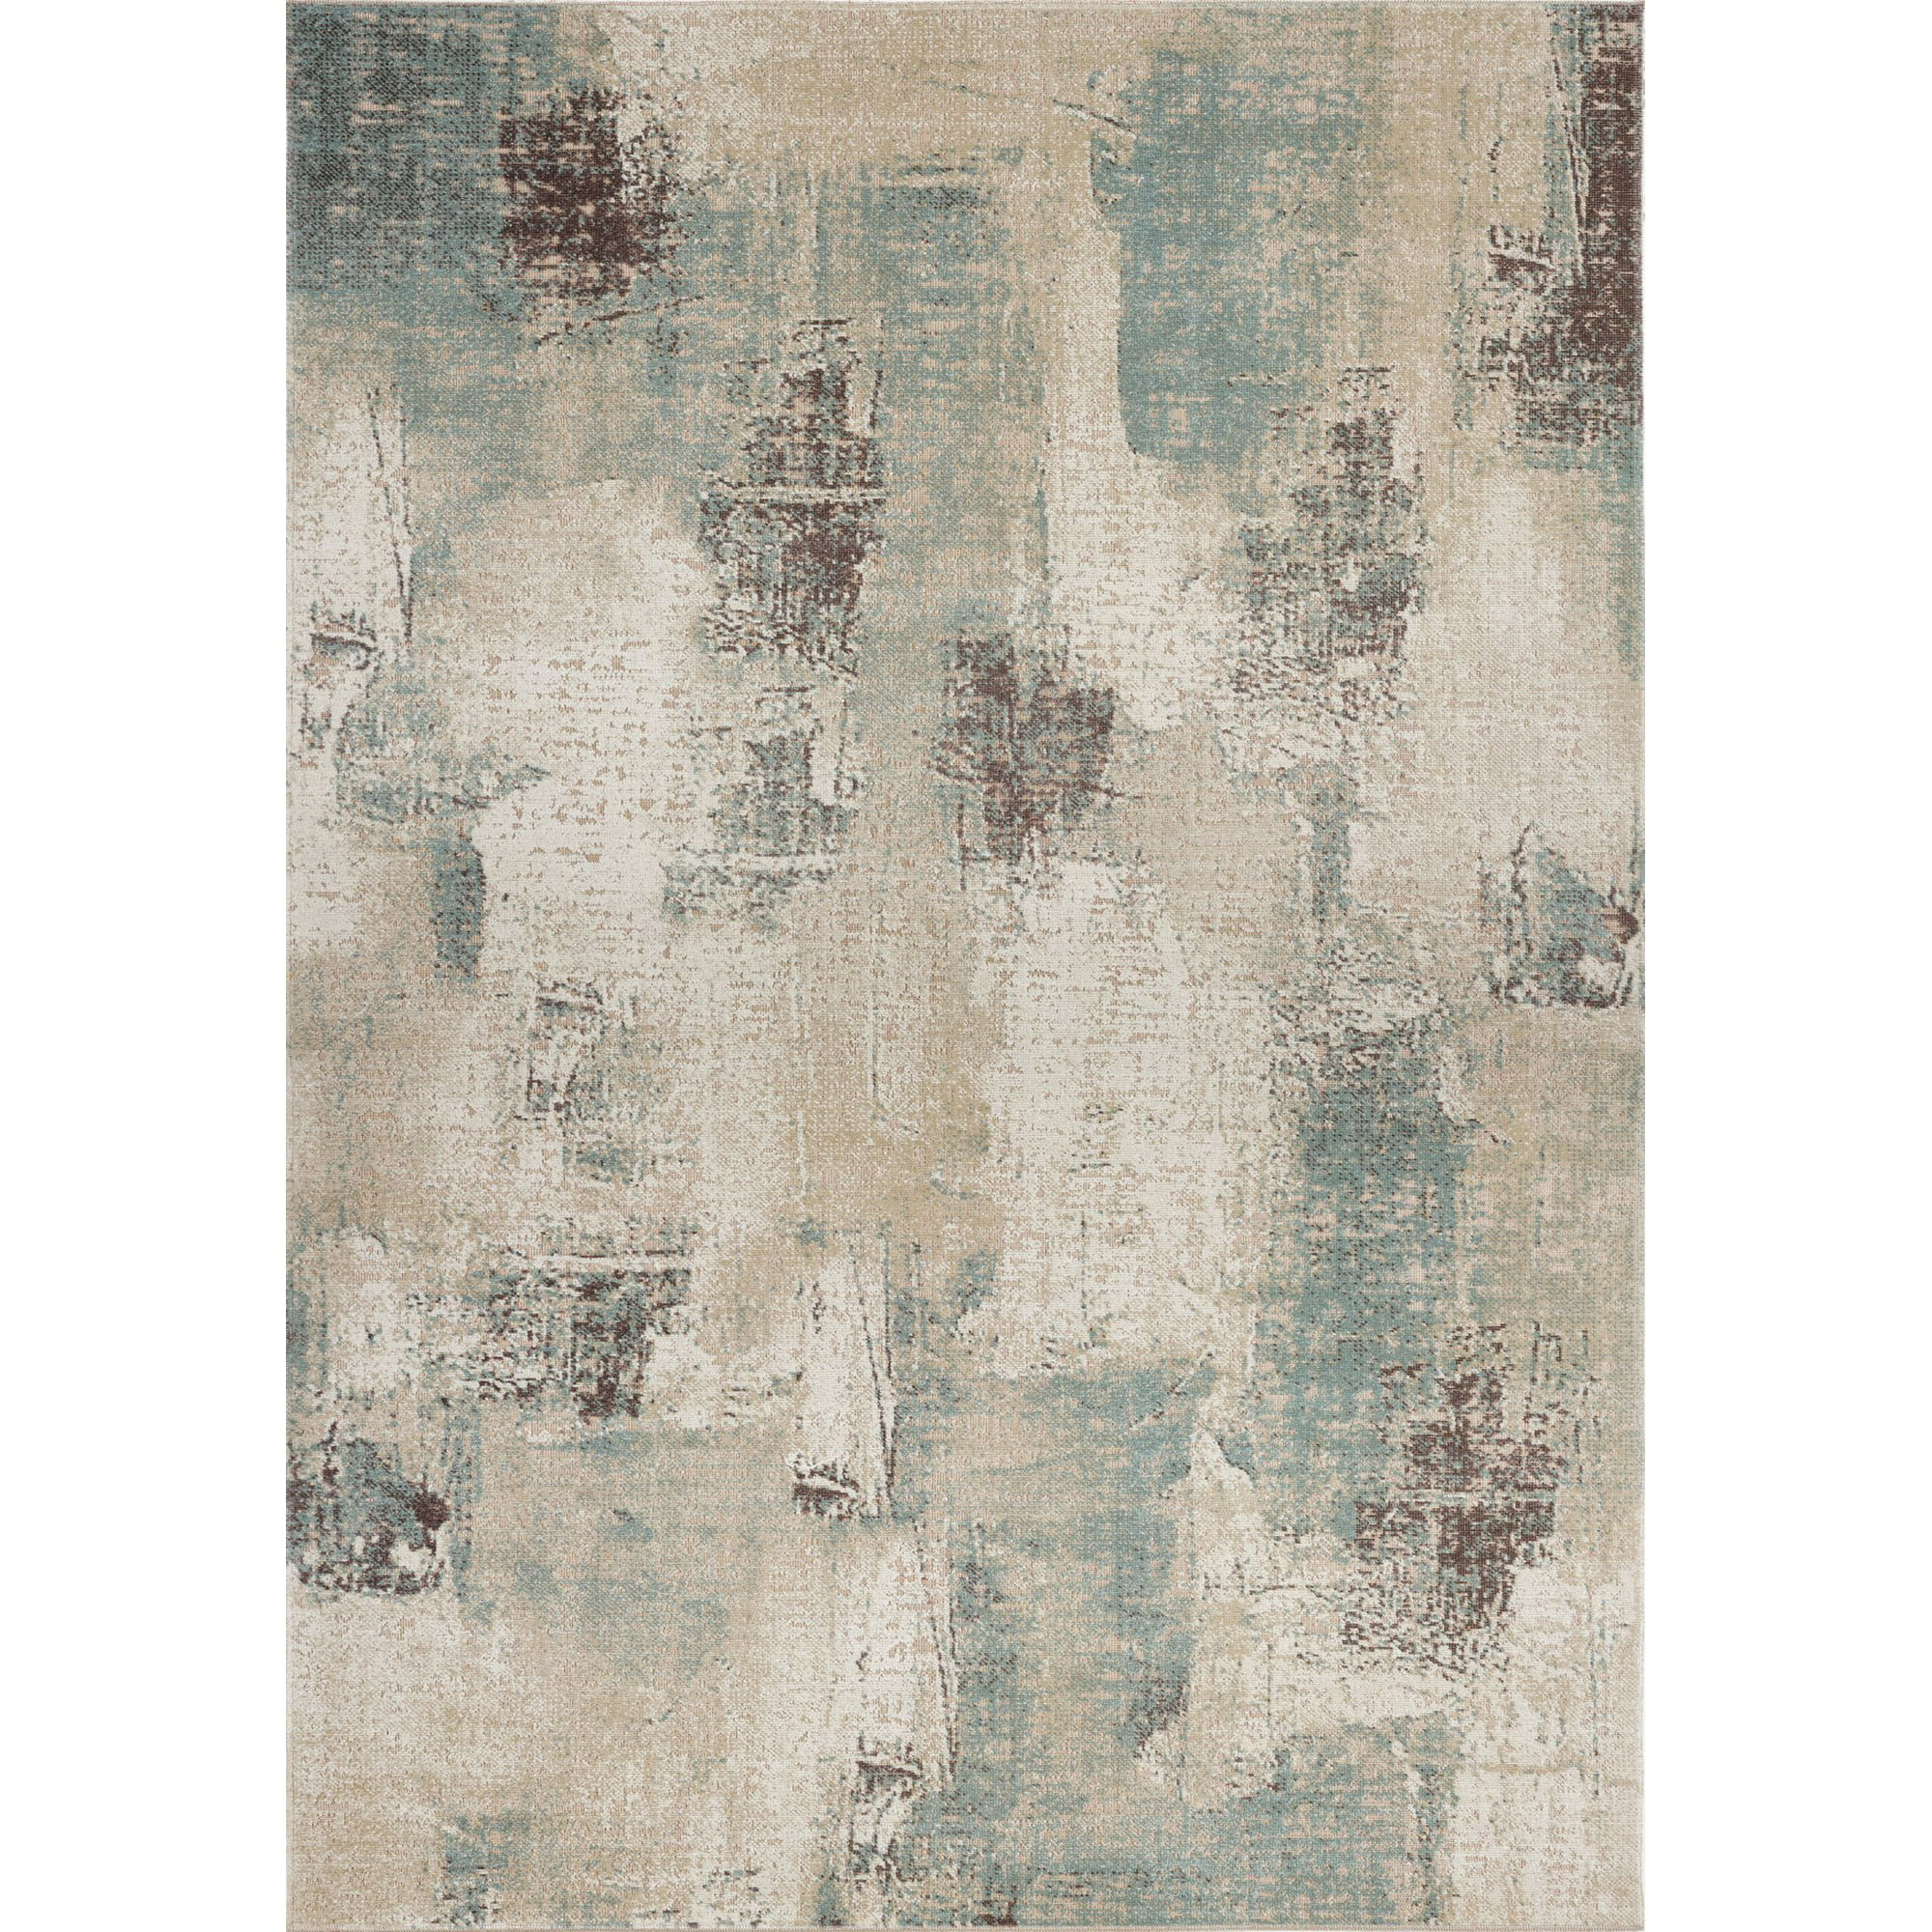 Ladole Rugs Rustic Beige Brown Teal Green Abstract Pattern Indoor Outdoor Area Rug Tapis Walmart Canada